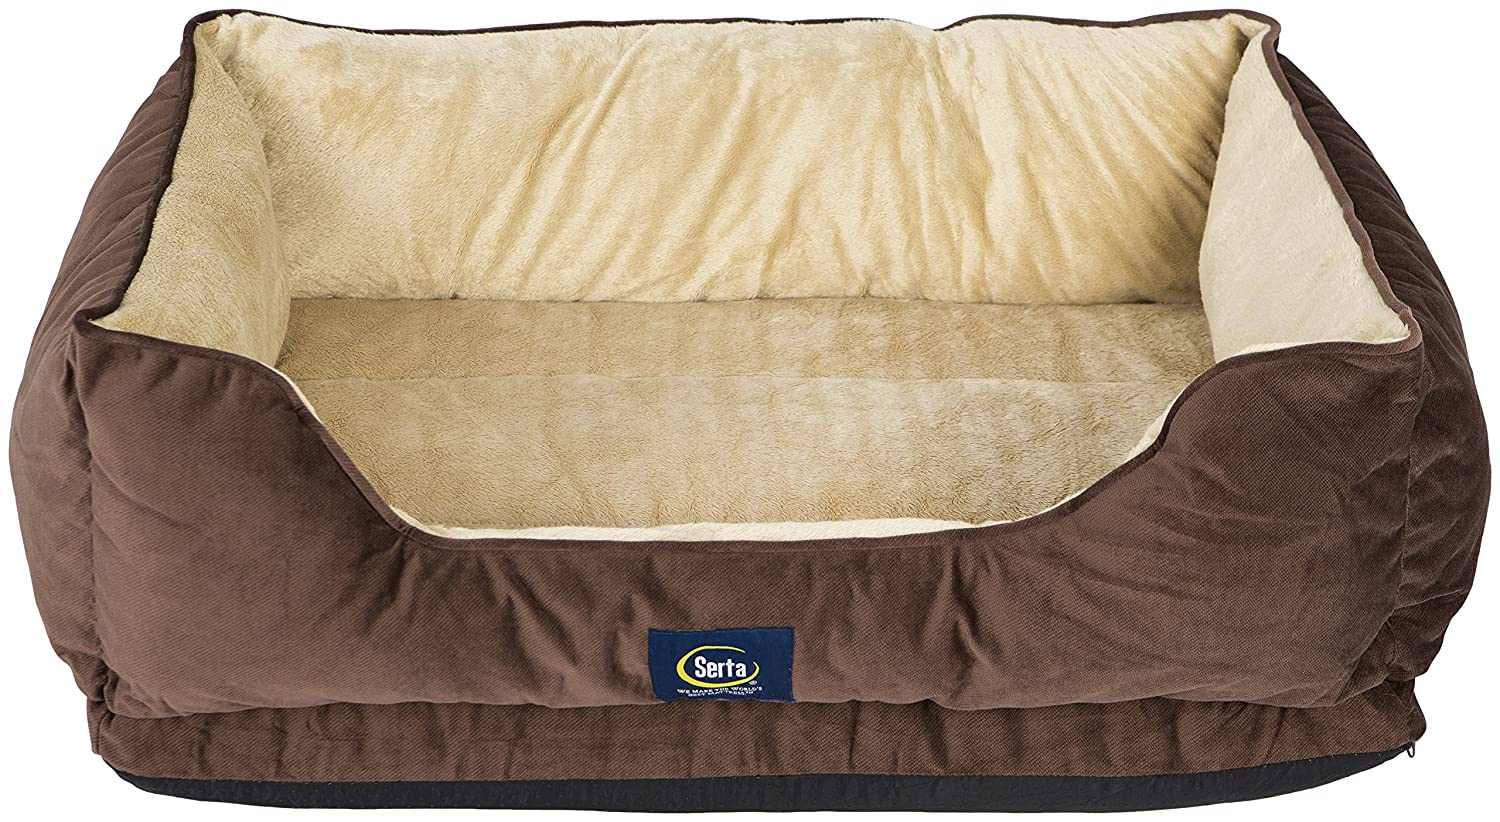 Serta Ortho Cuddler Pet Bed